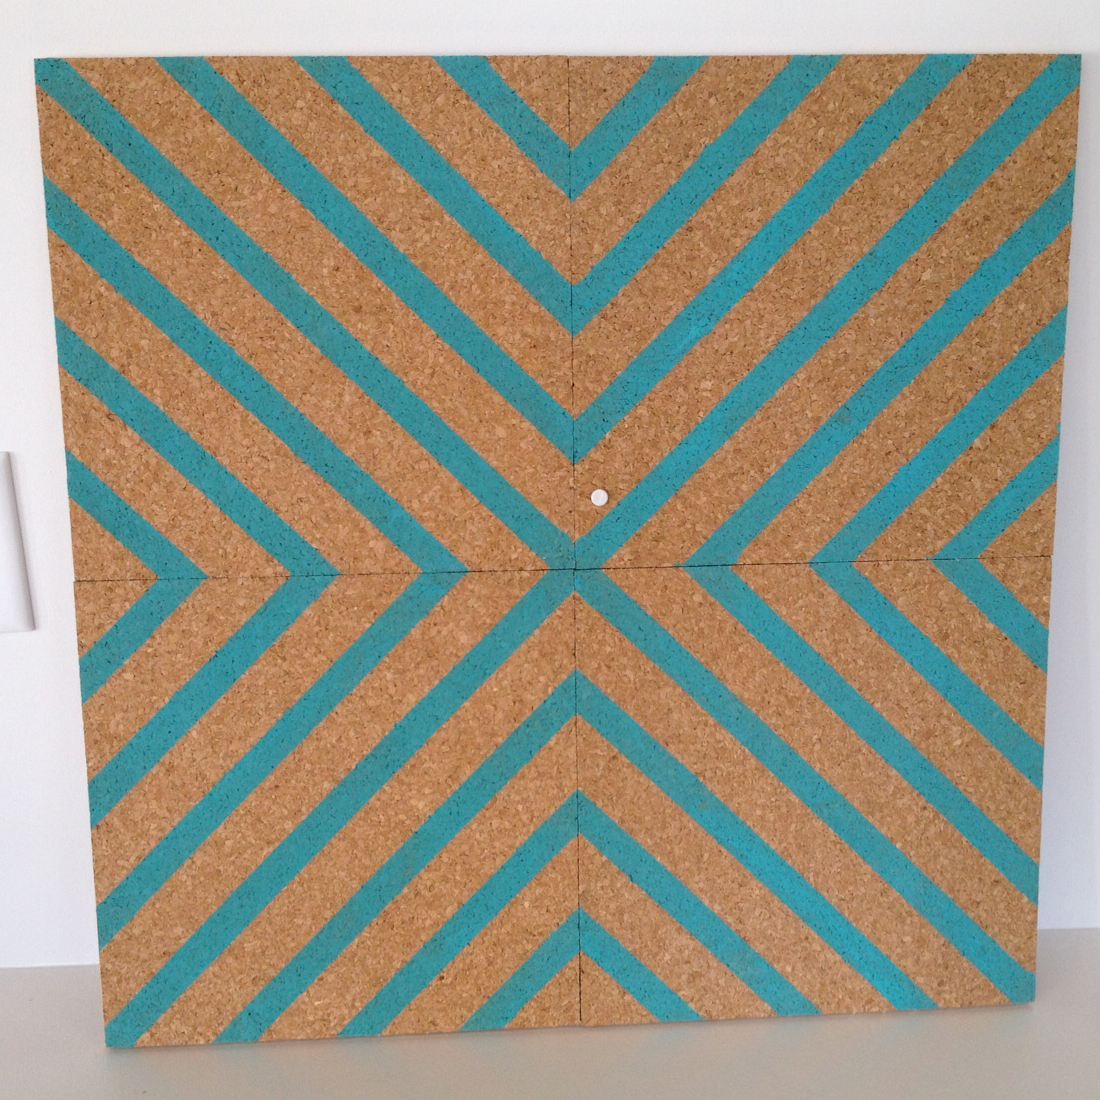 ... Floor Design Appealing Image Of Square Turquoise Cork  ...